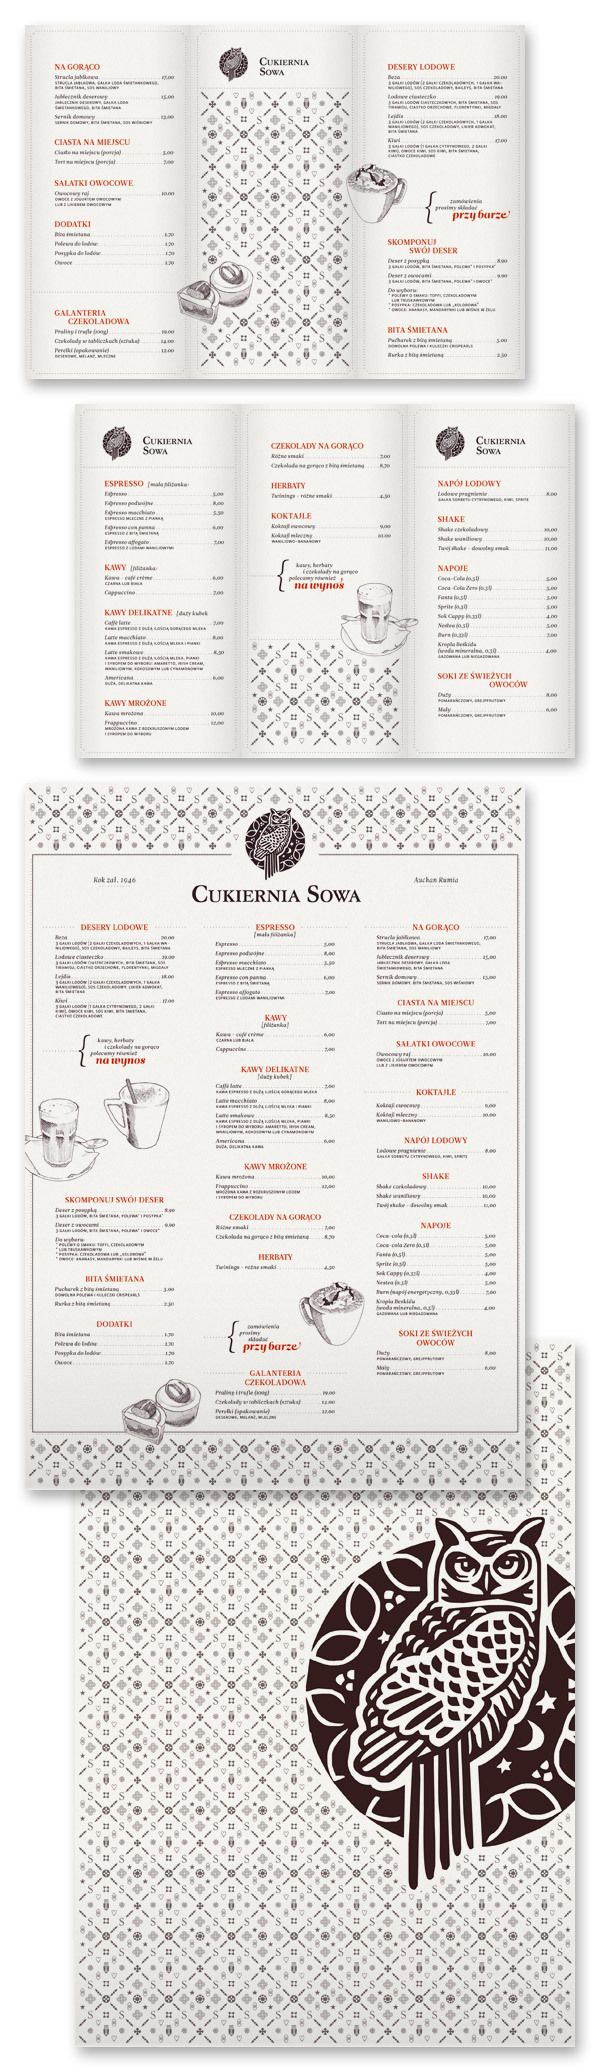 40+ Restaurant Menu Designs For Inspiration